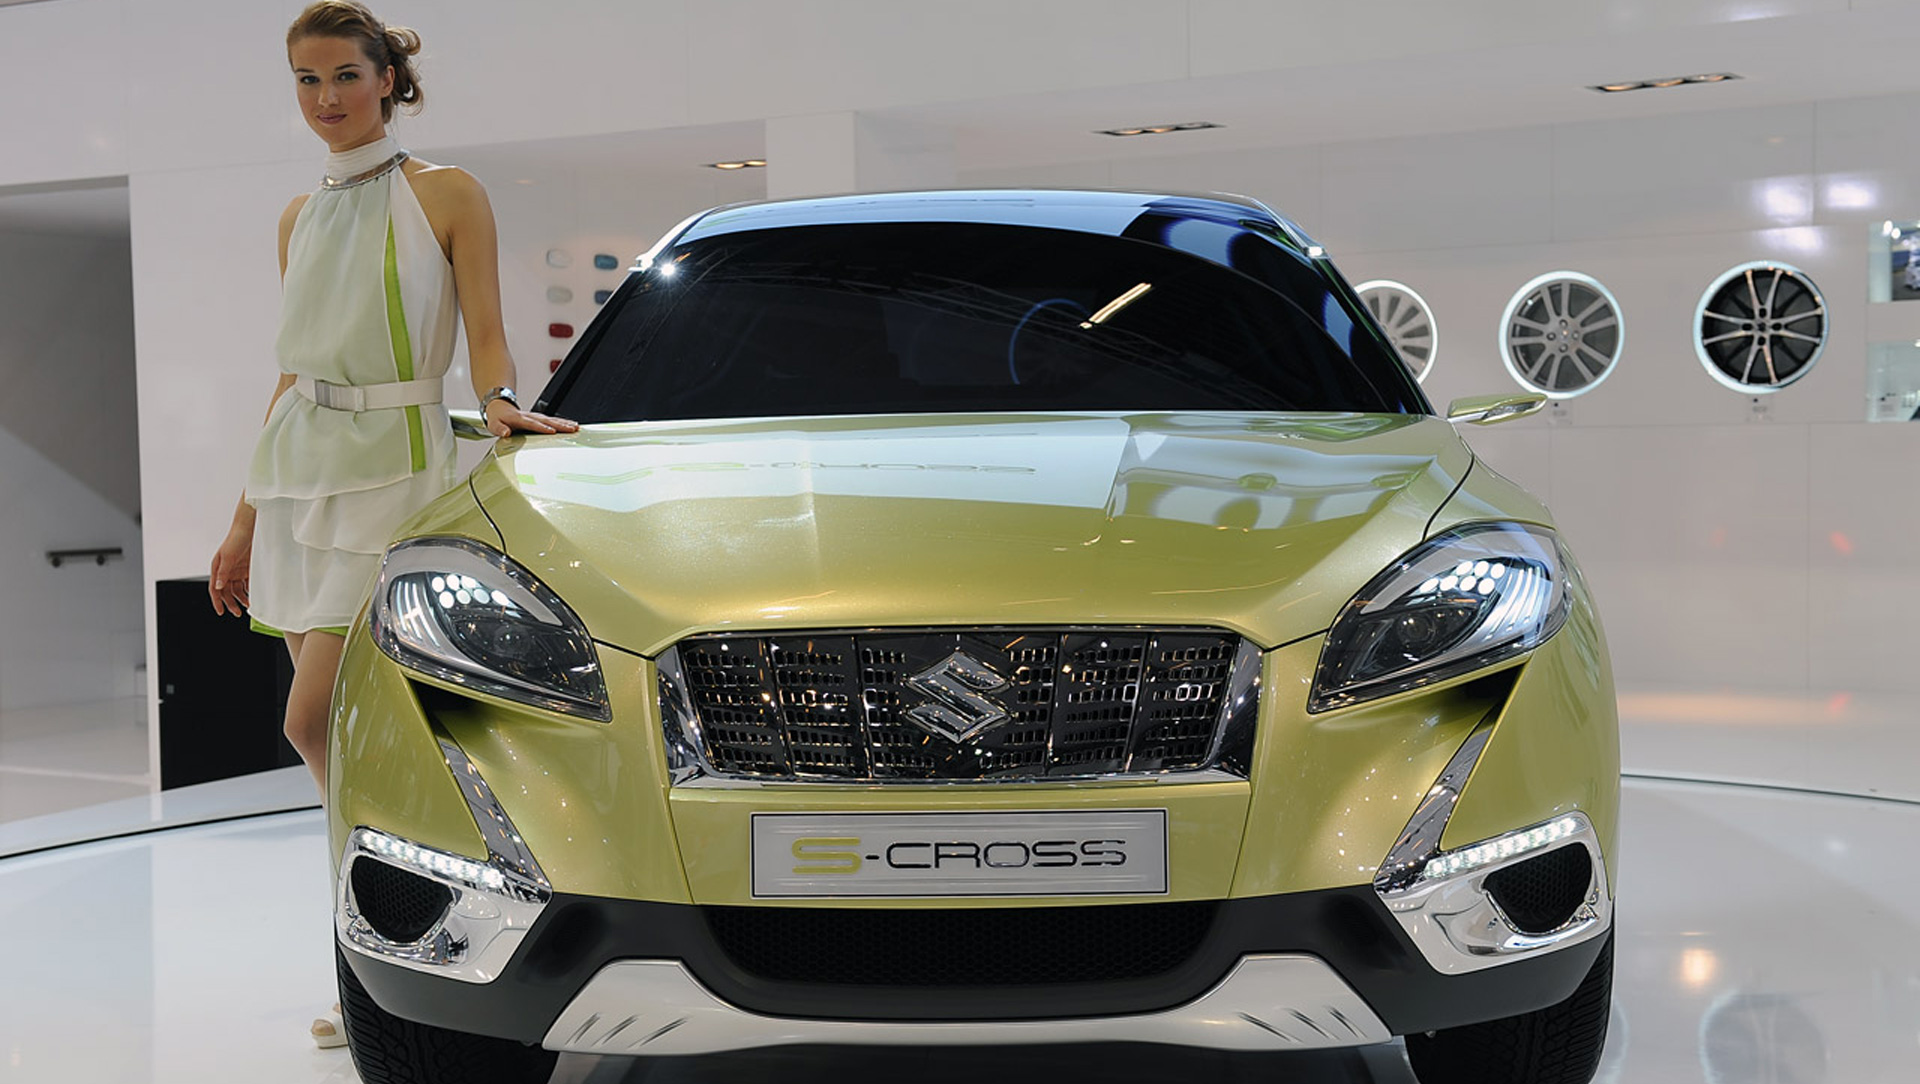 2019 Suzuki S Cross Concept photo - 6